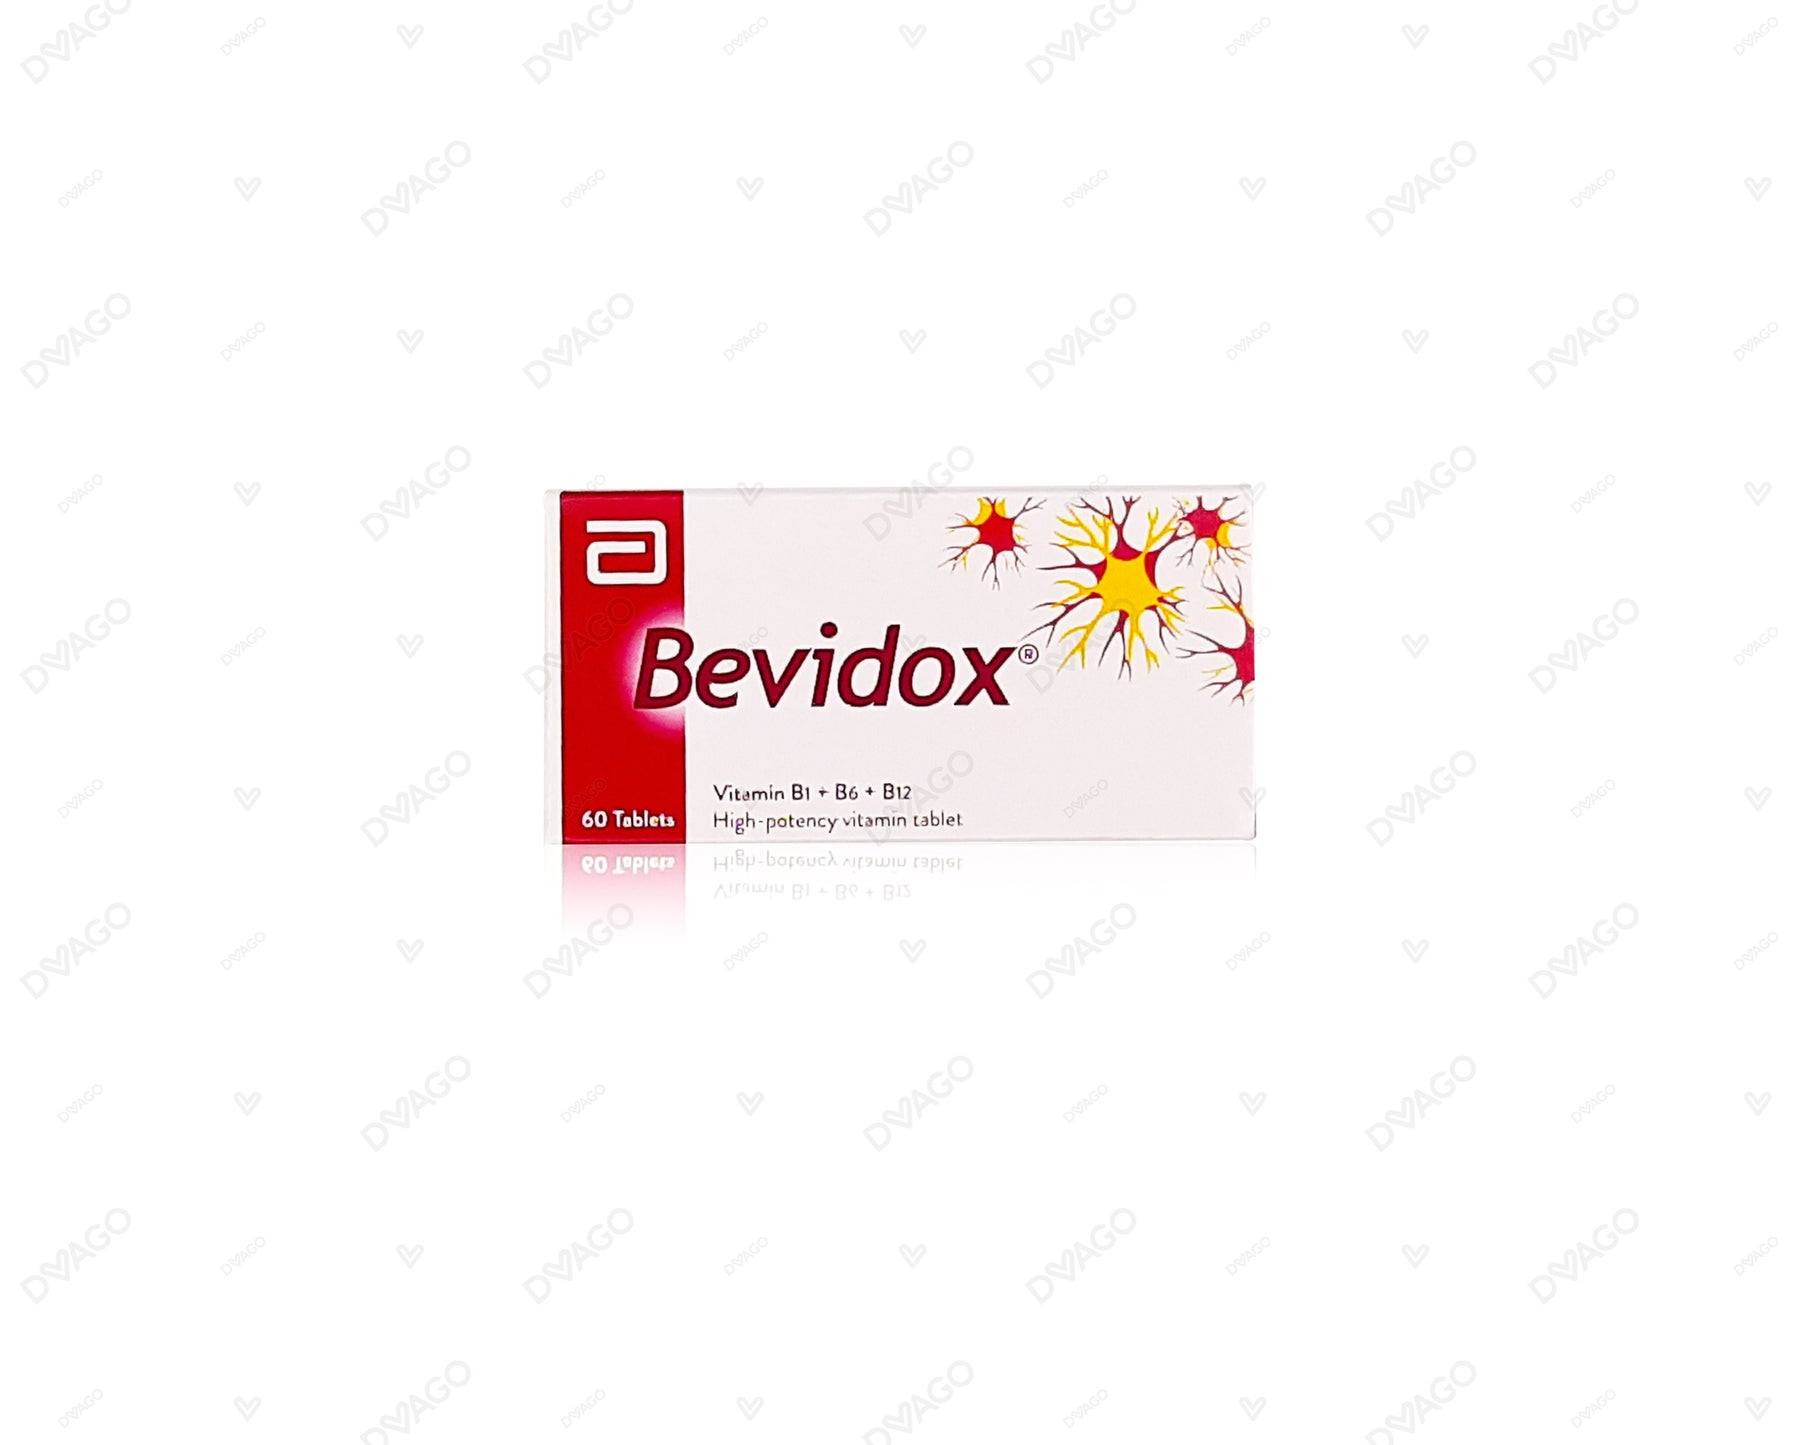 Bevidox Tablets 60's